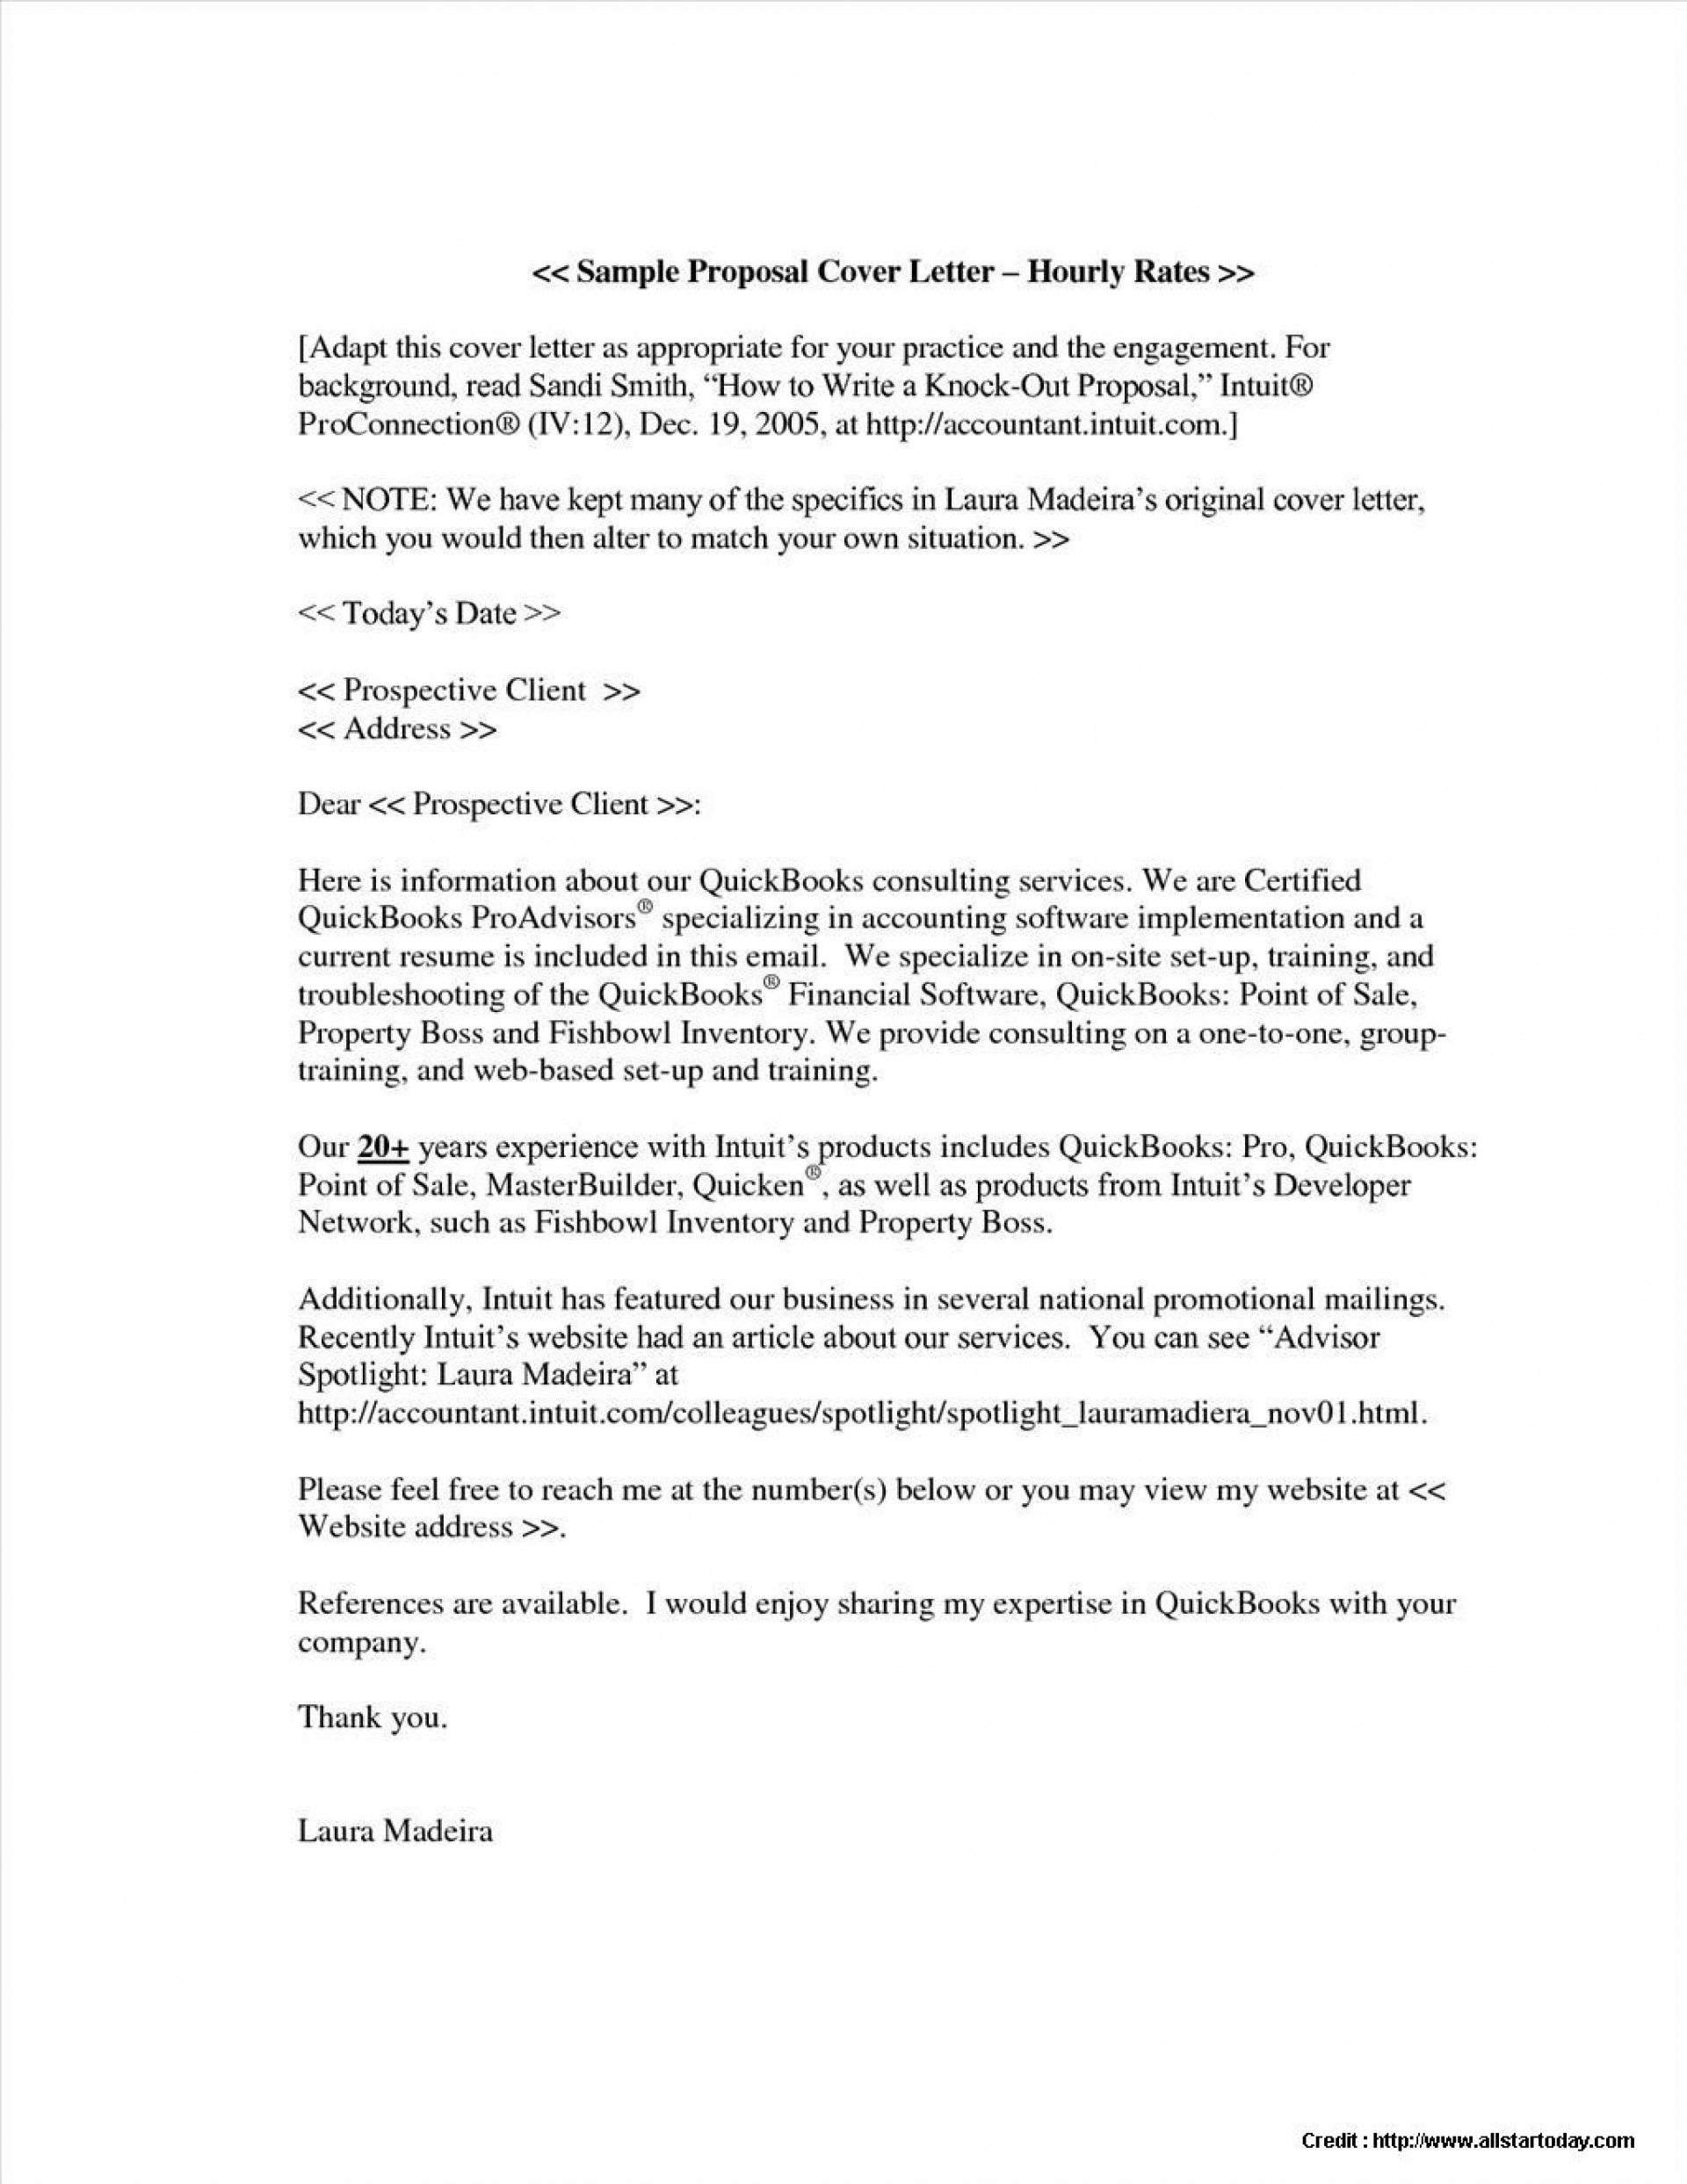 Grant Cover Letter Template from www.museumlegs.com